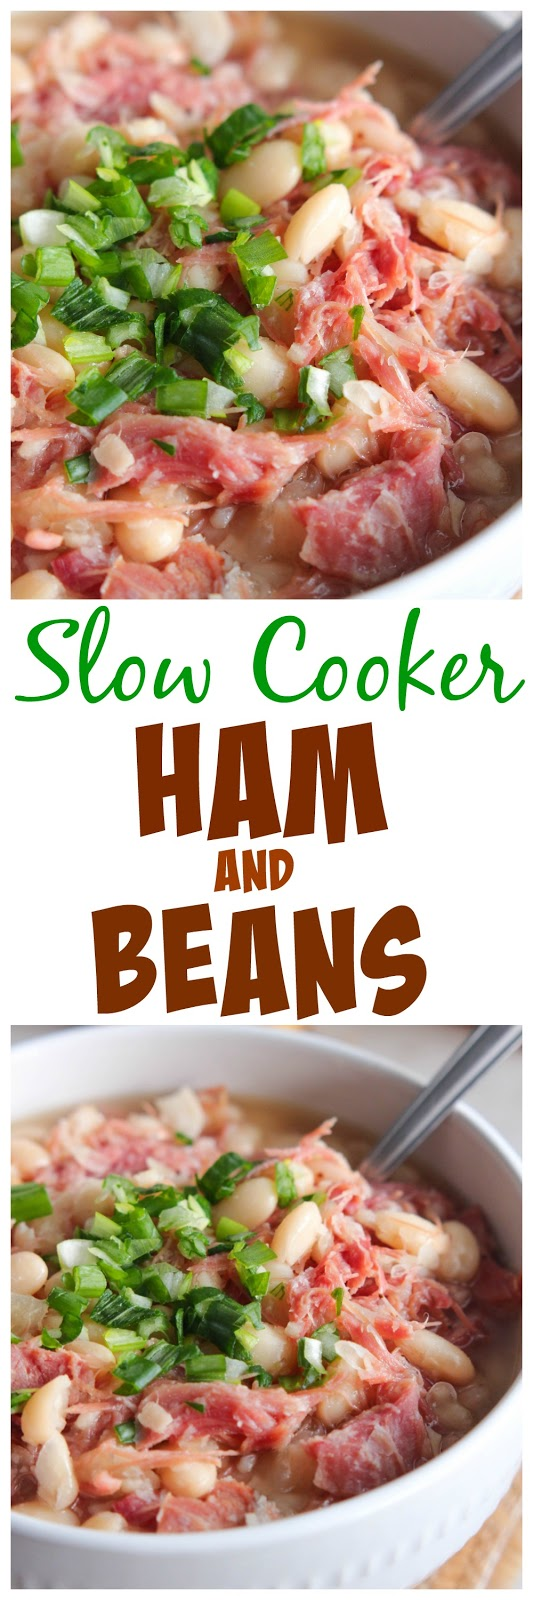 Eat Cake For Dinner: Slow Cooker Ham and Beans